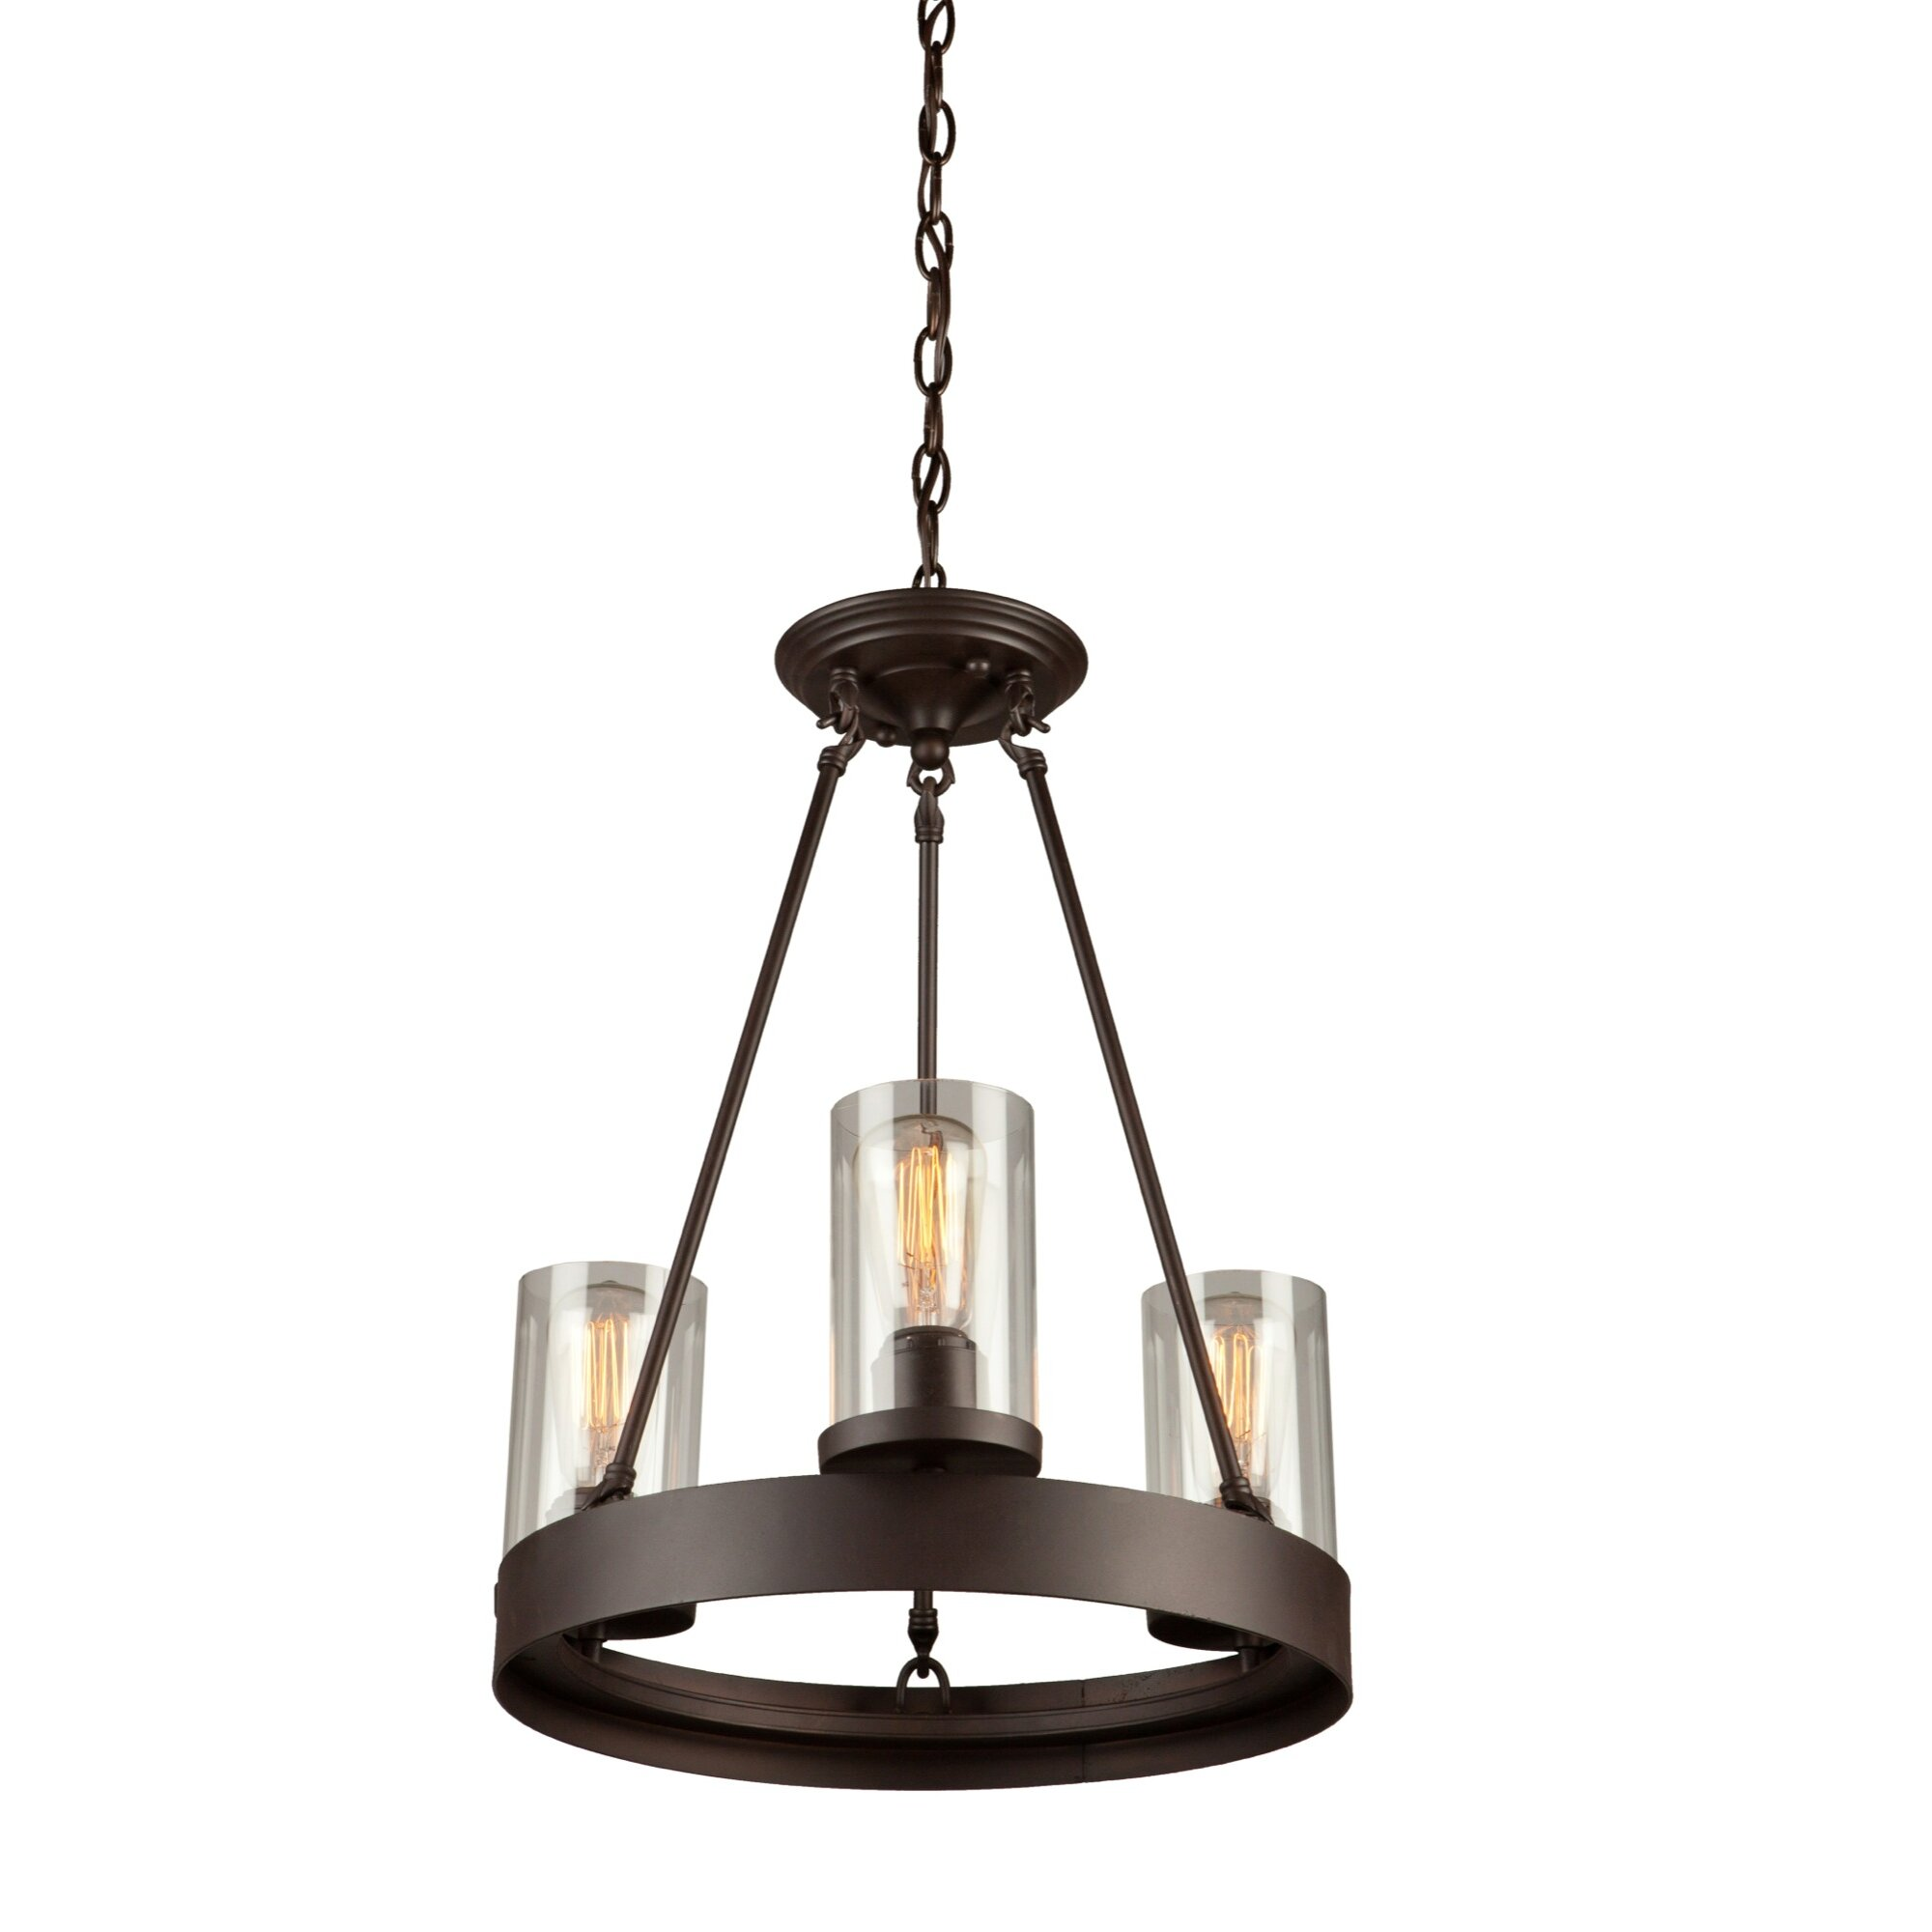 artcraft lighting melno park 3 light mini chandelier. Black Bedroom Furniture Sets. Home Design Ideas